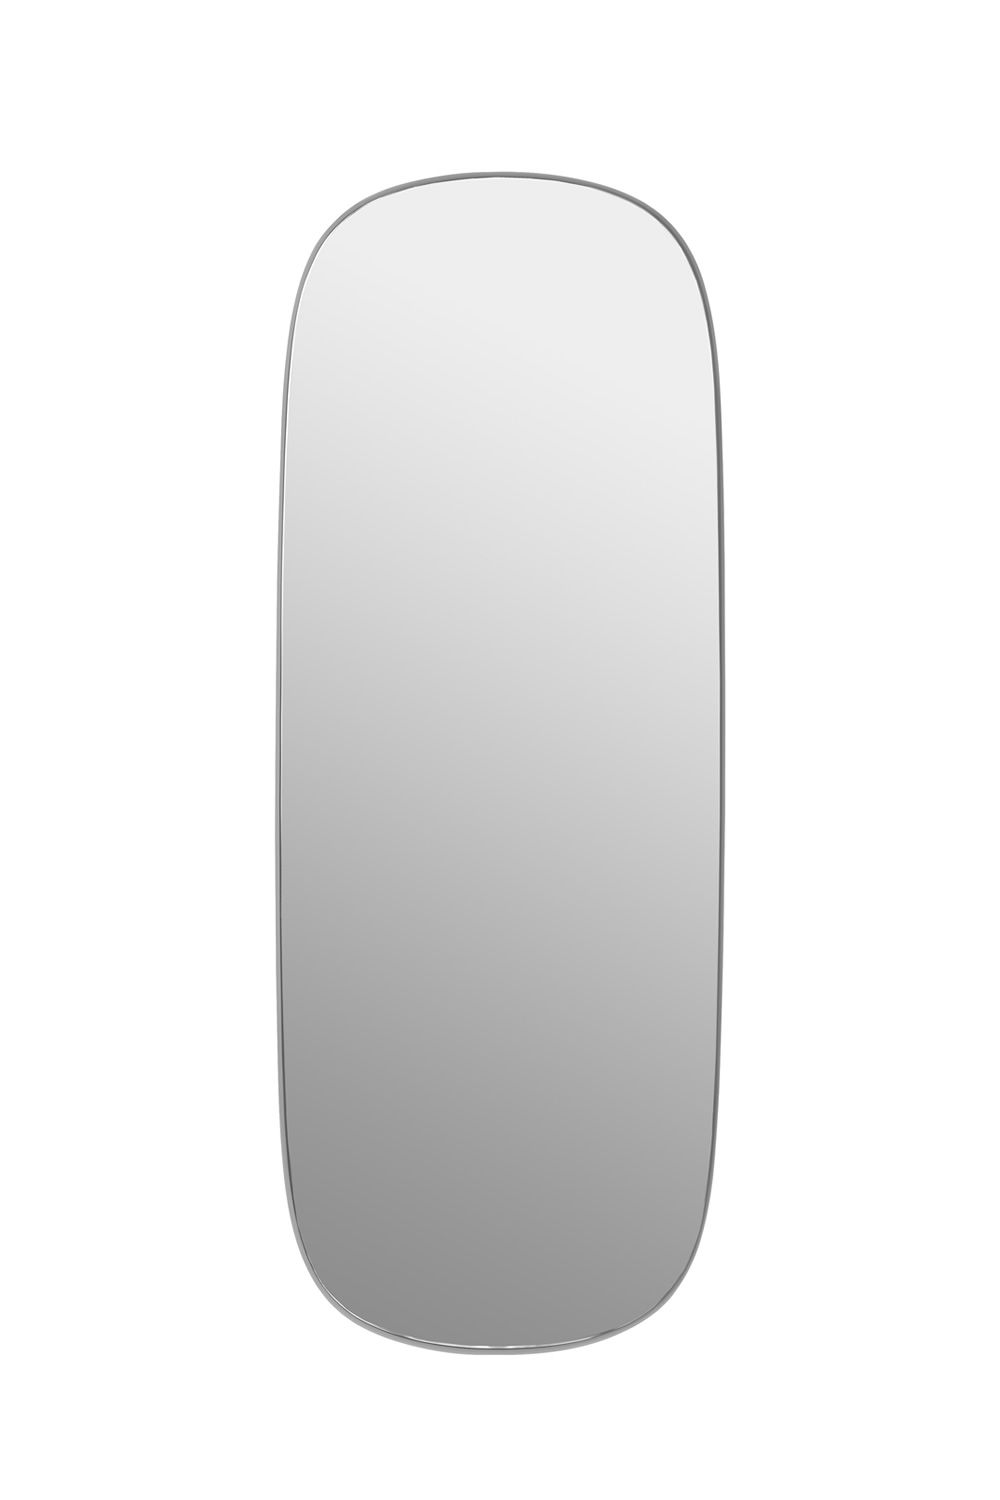 Miroir design Muuto, grand, gris